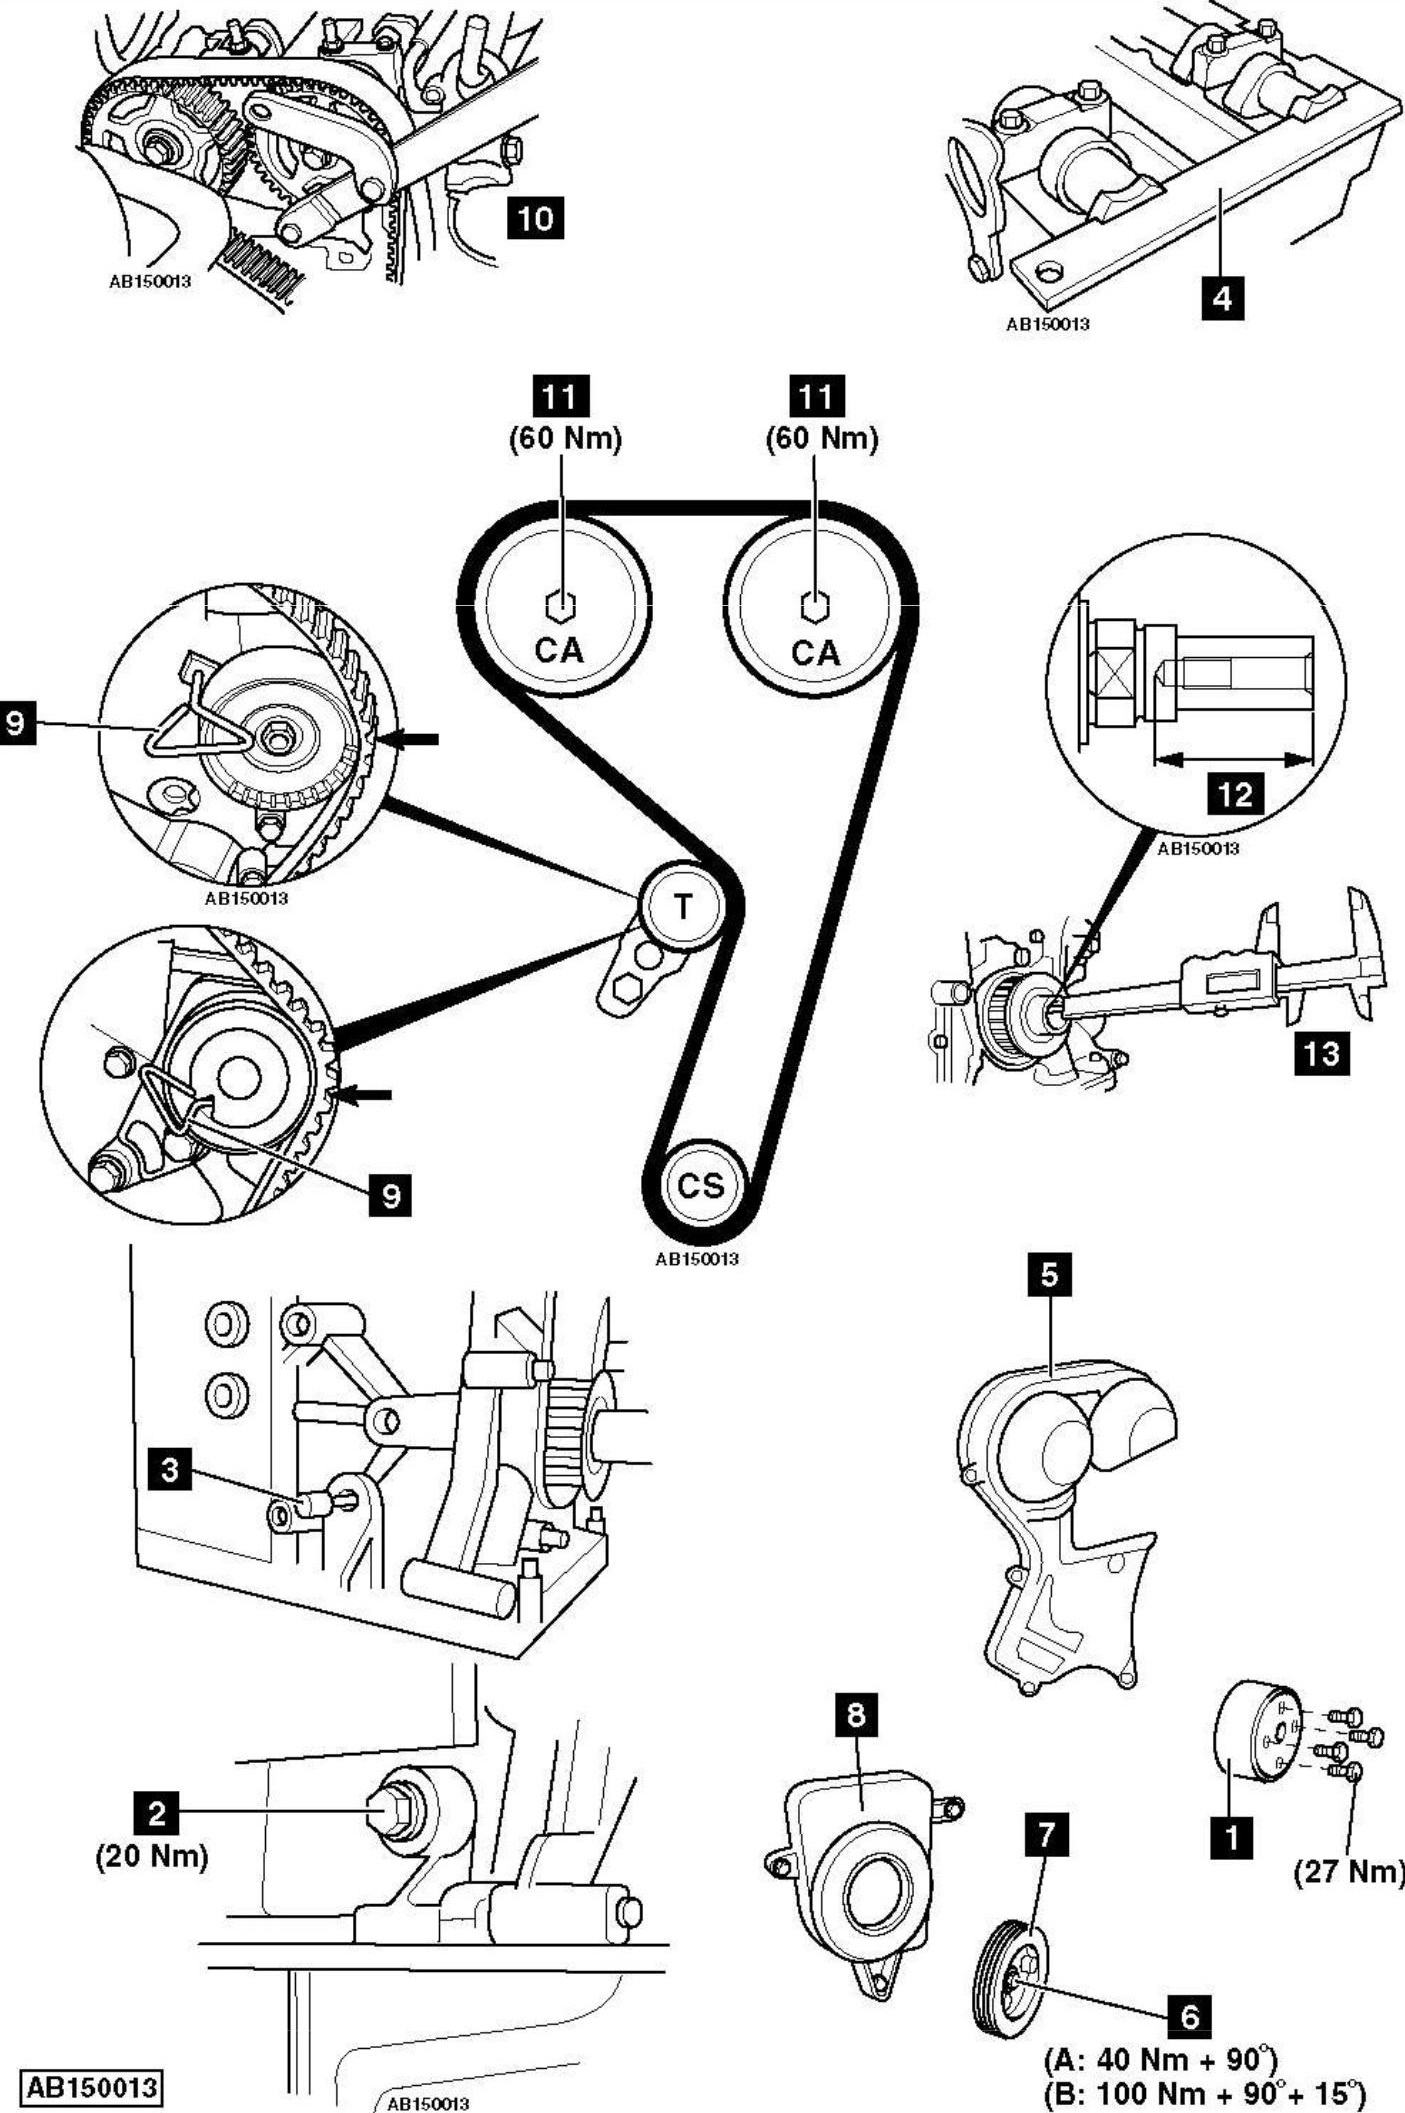 1998 Honda Civic Thermostat Diagram on 2005 acura tl parts diagram